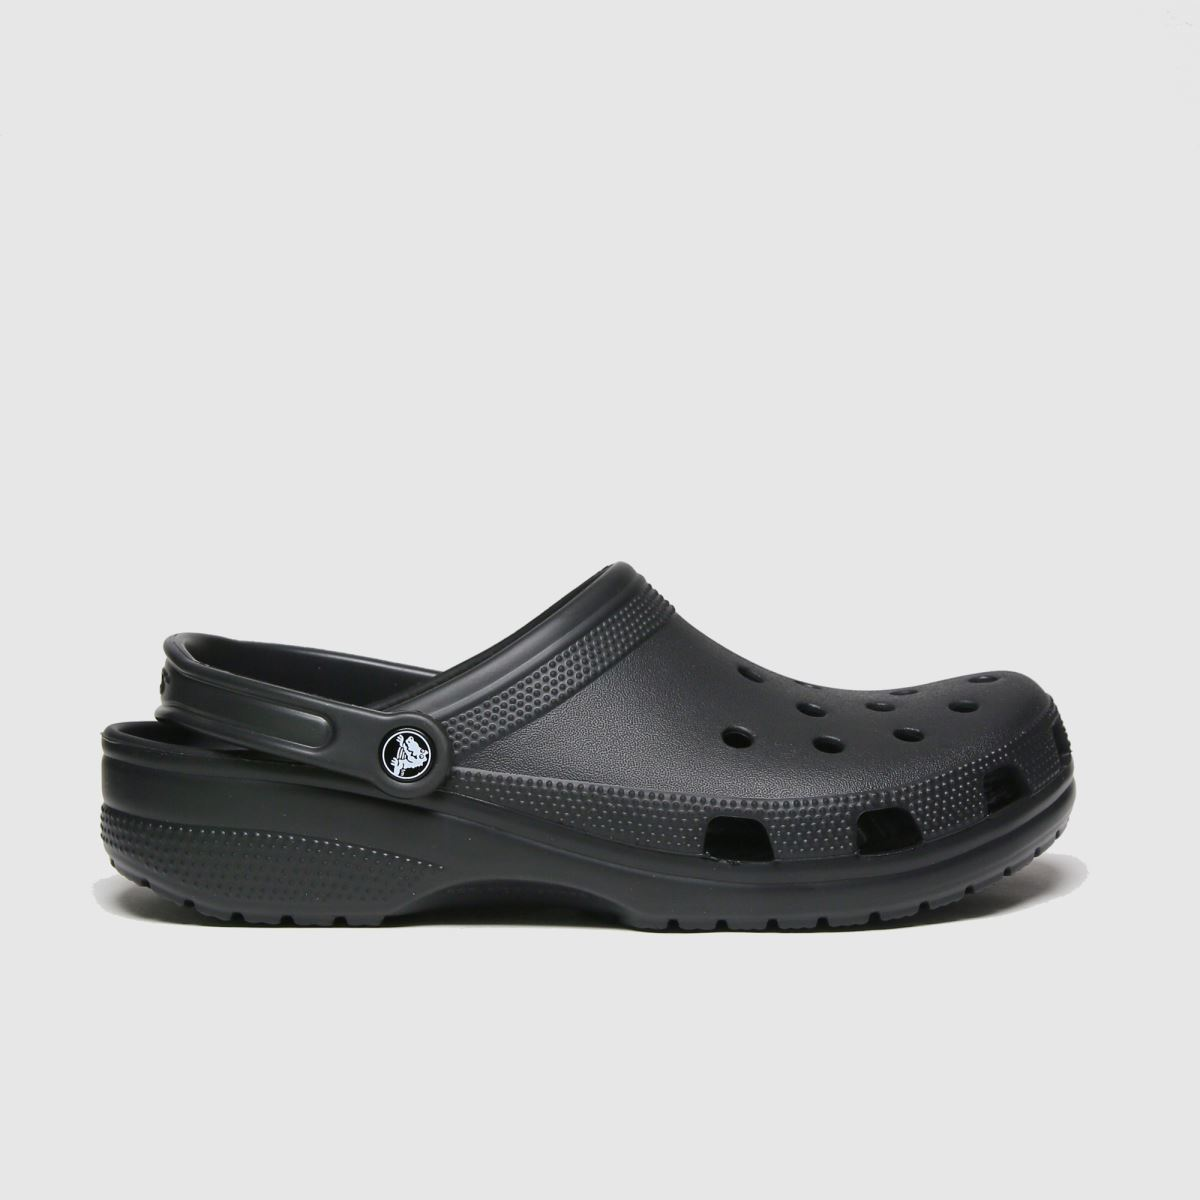 Crocs Black Classic Sandals